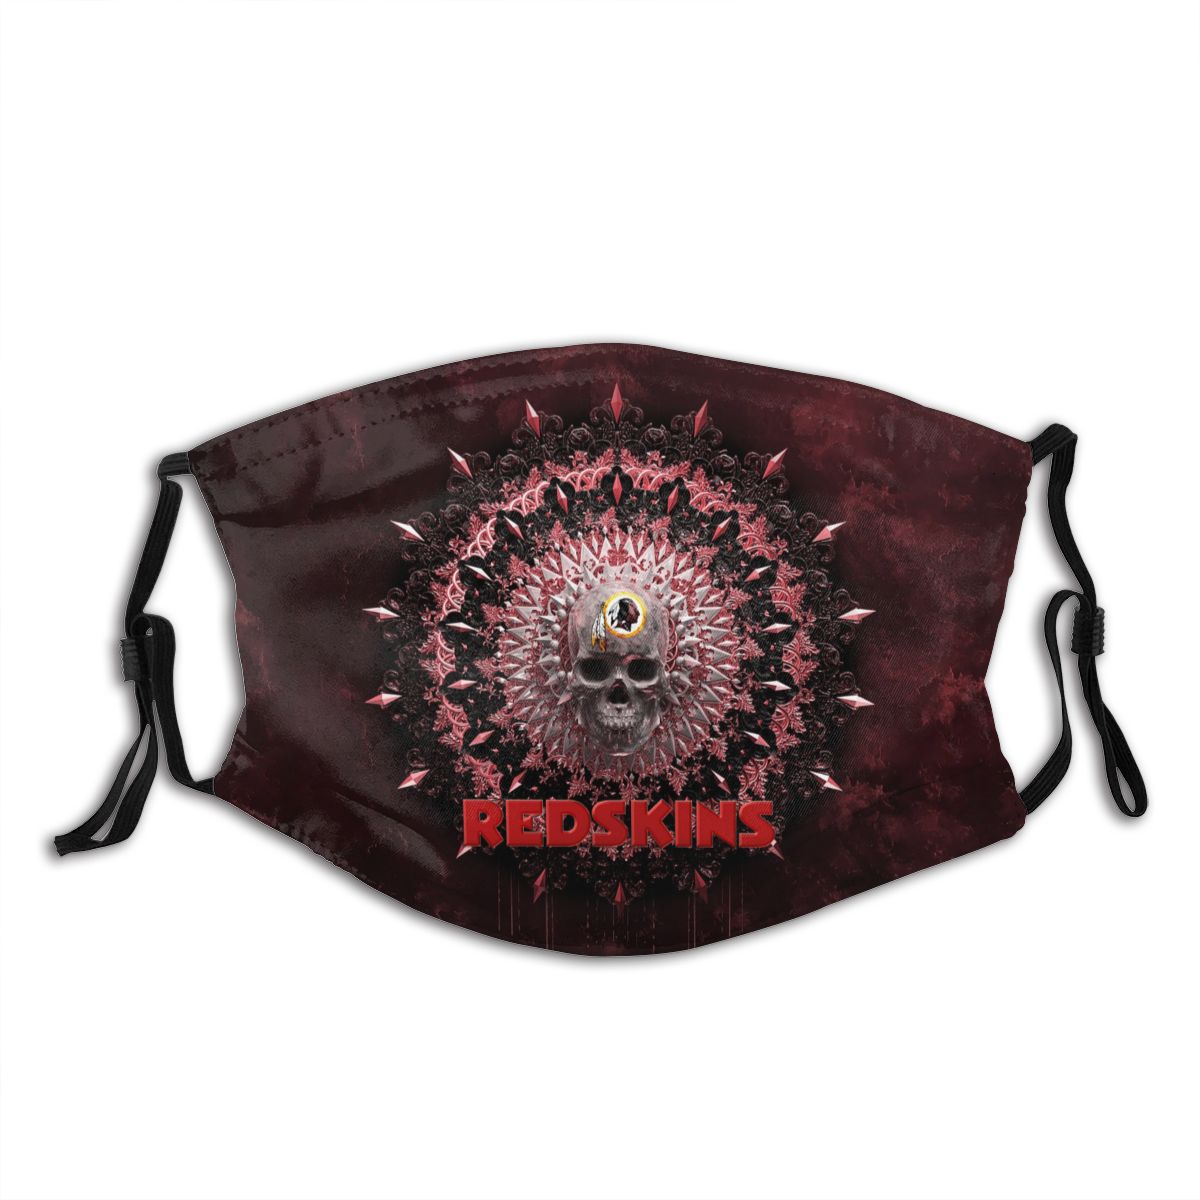 Redskins Adult Cloth Face Covering With Filter